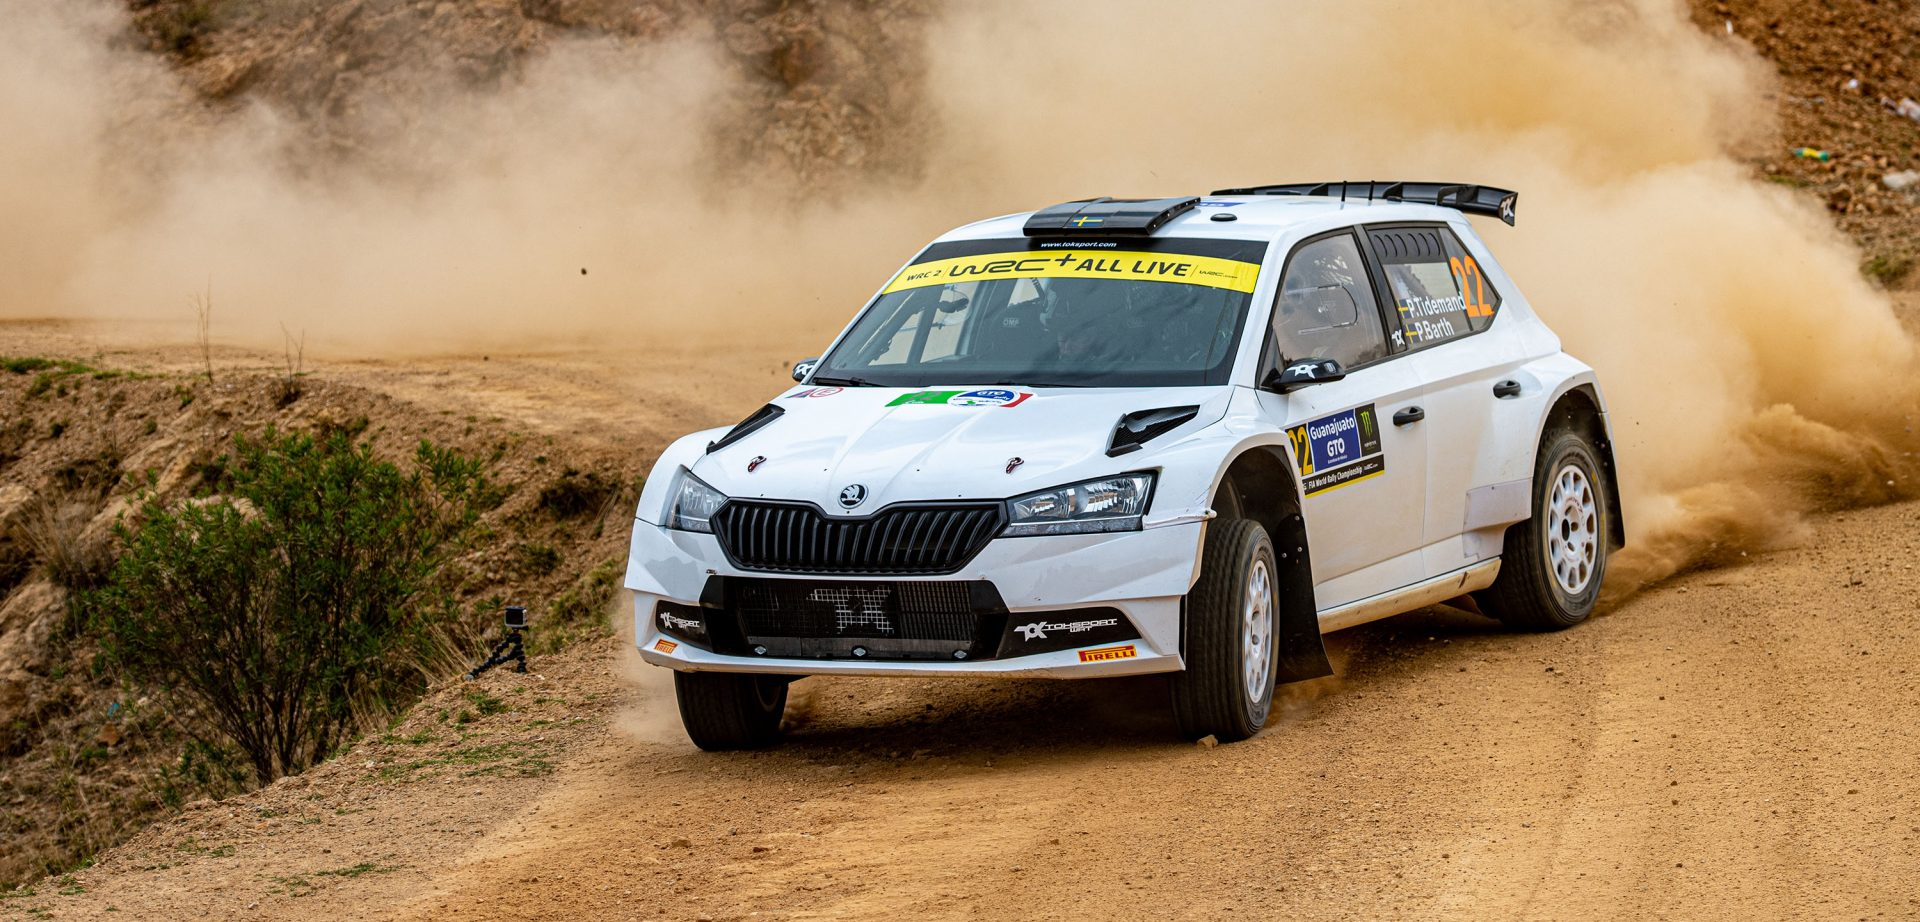 Pontus Tidemand Once Again Dominates the Mexican Rally